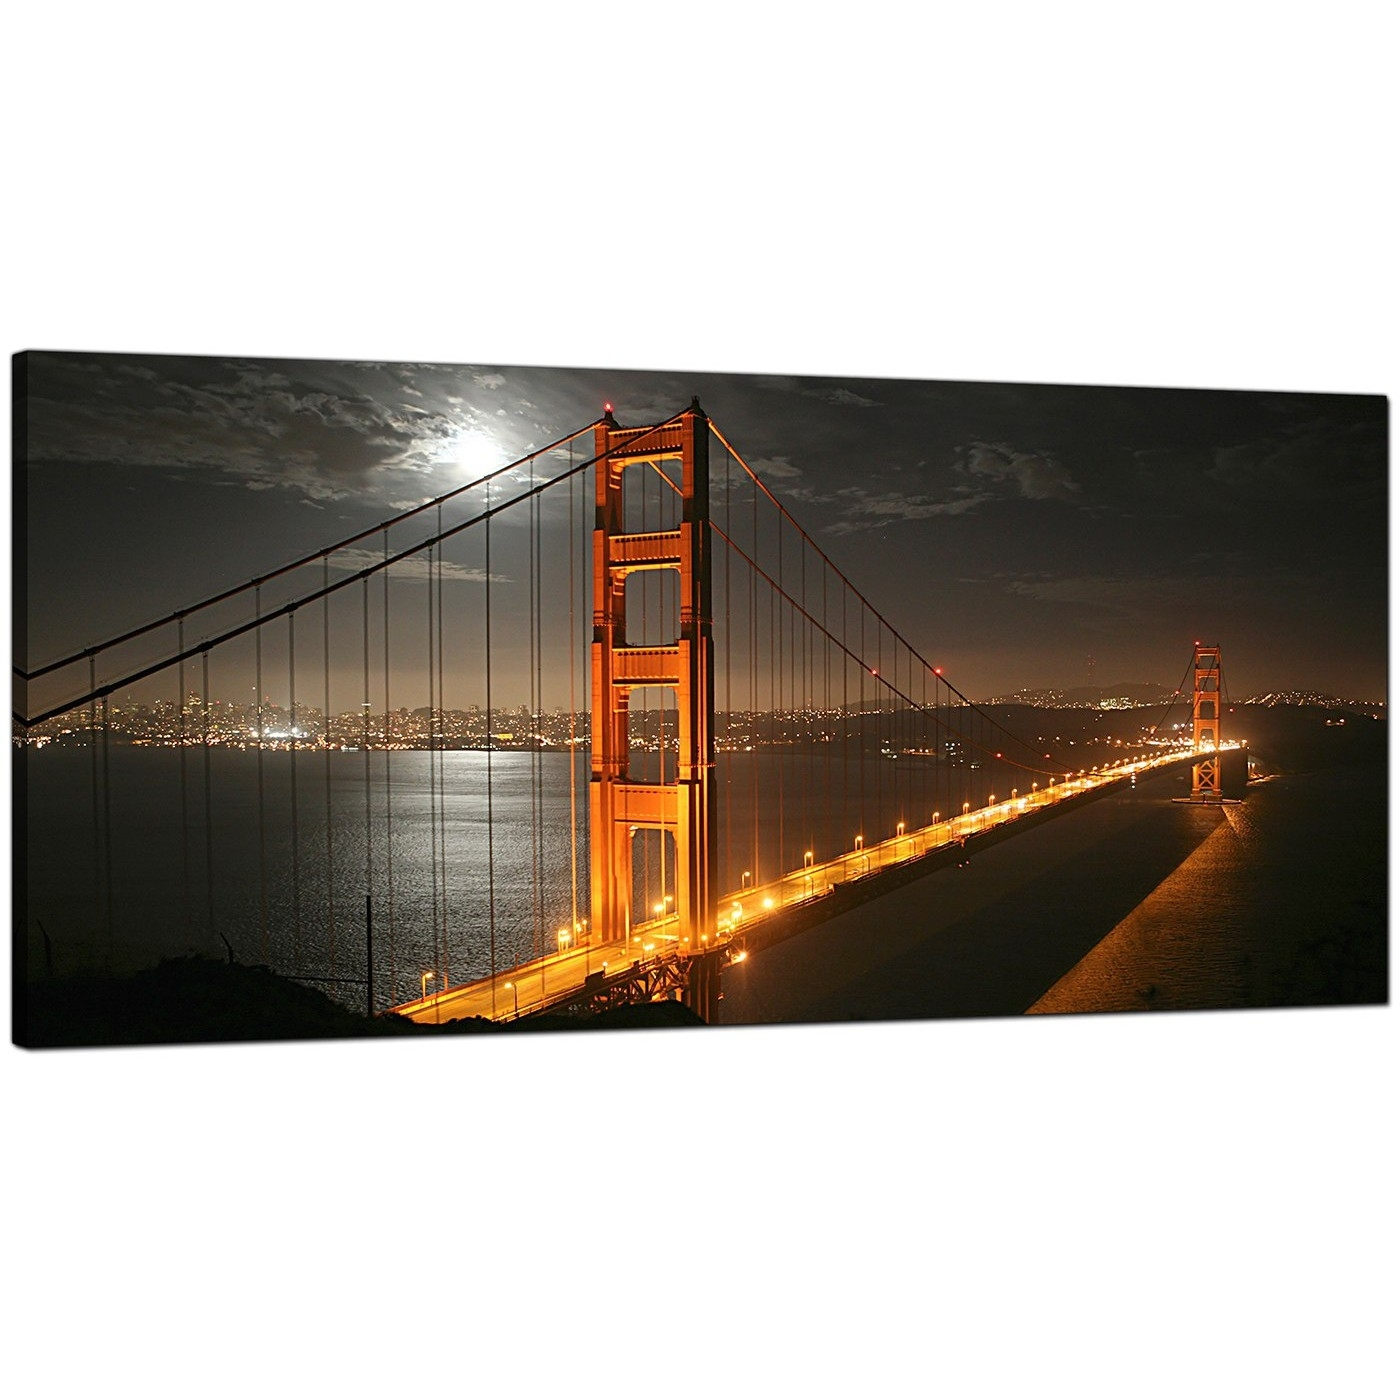 Cheap Canvas Prints Of Night Time San Francisco For Your Dining Room Intended For Most Recent San Francisco Wall Art (View 7 of 20)